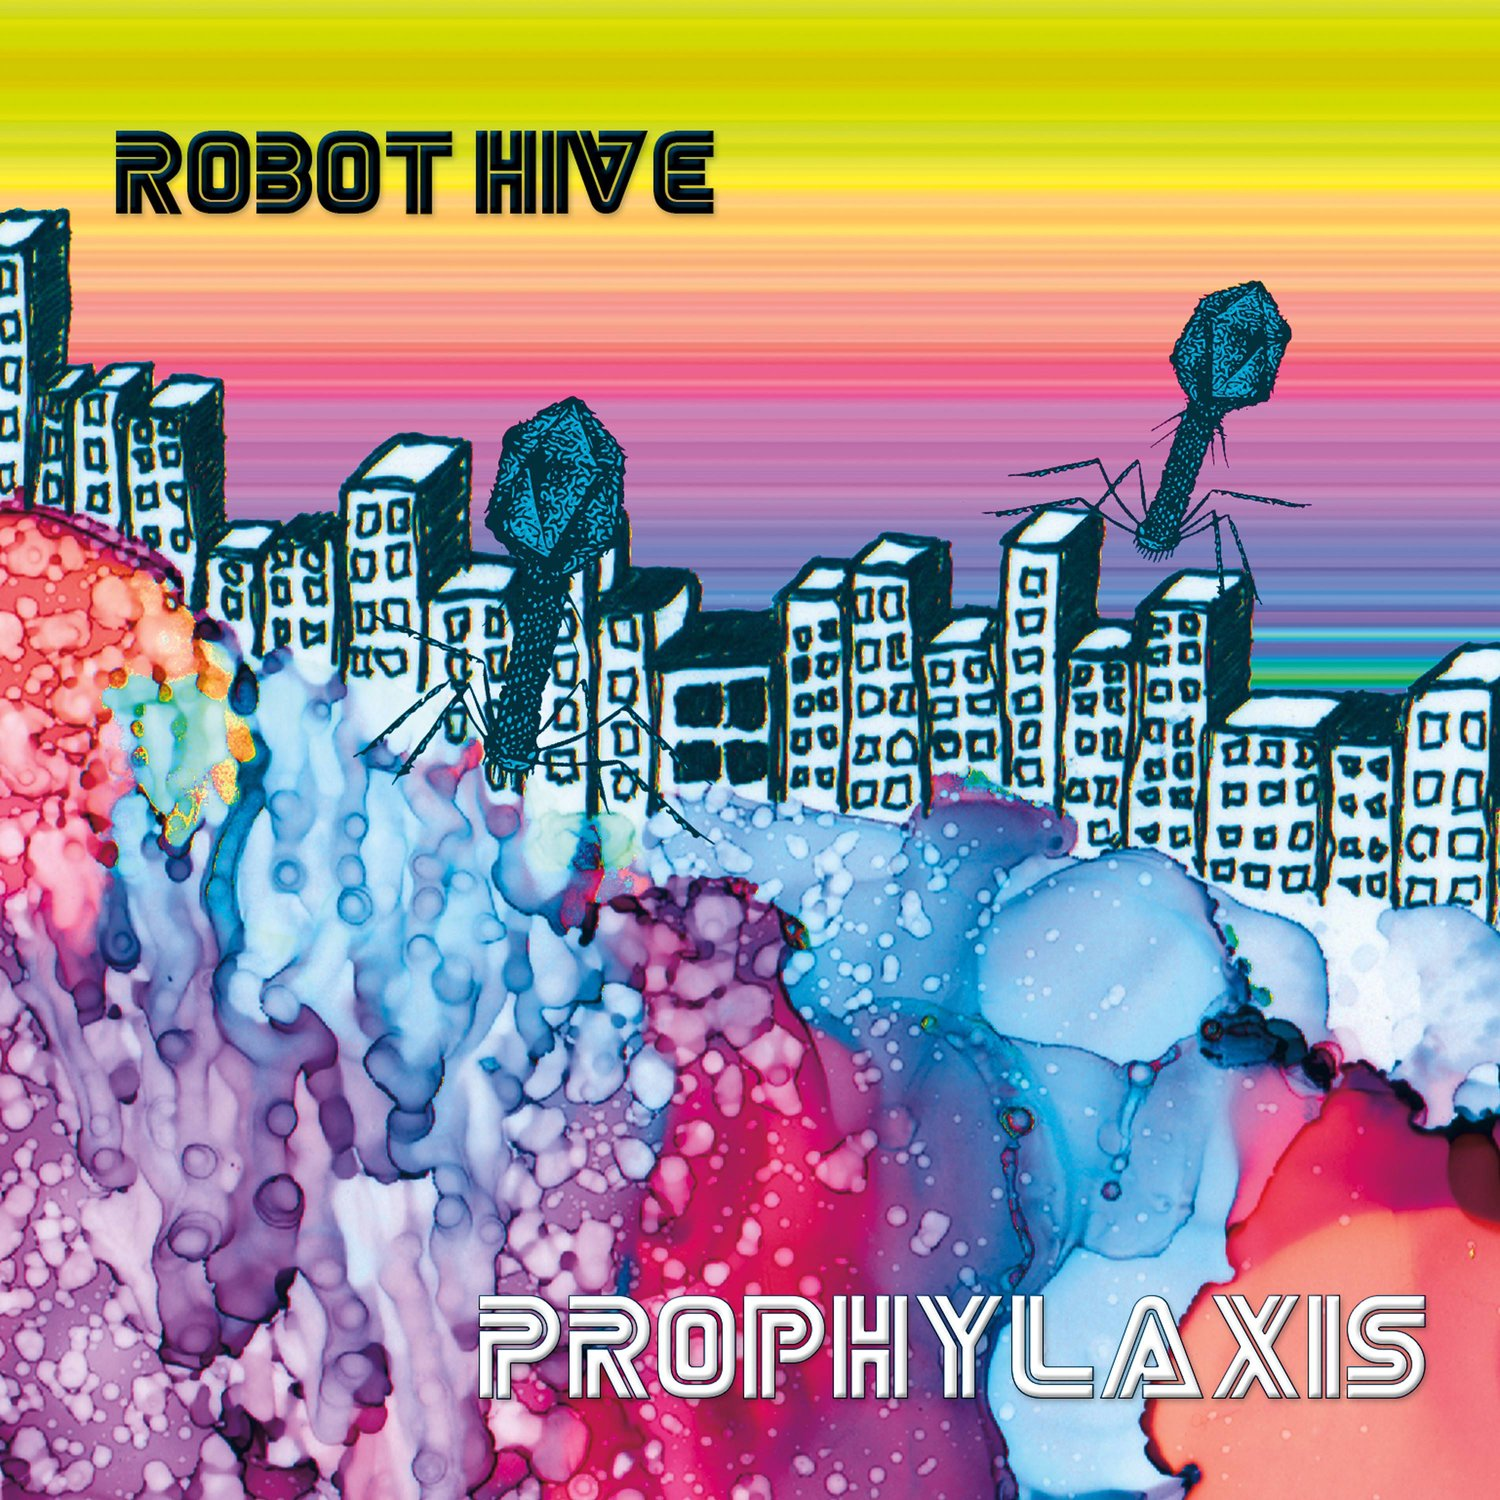 Robot Hive CD Release w Natural Sympathies - Image 1